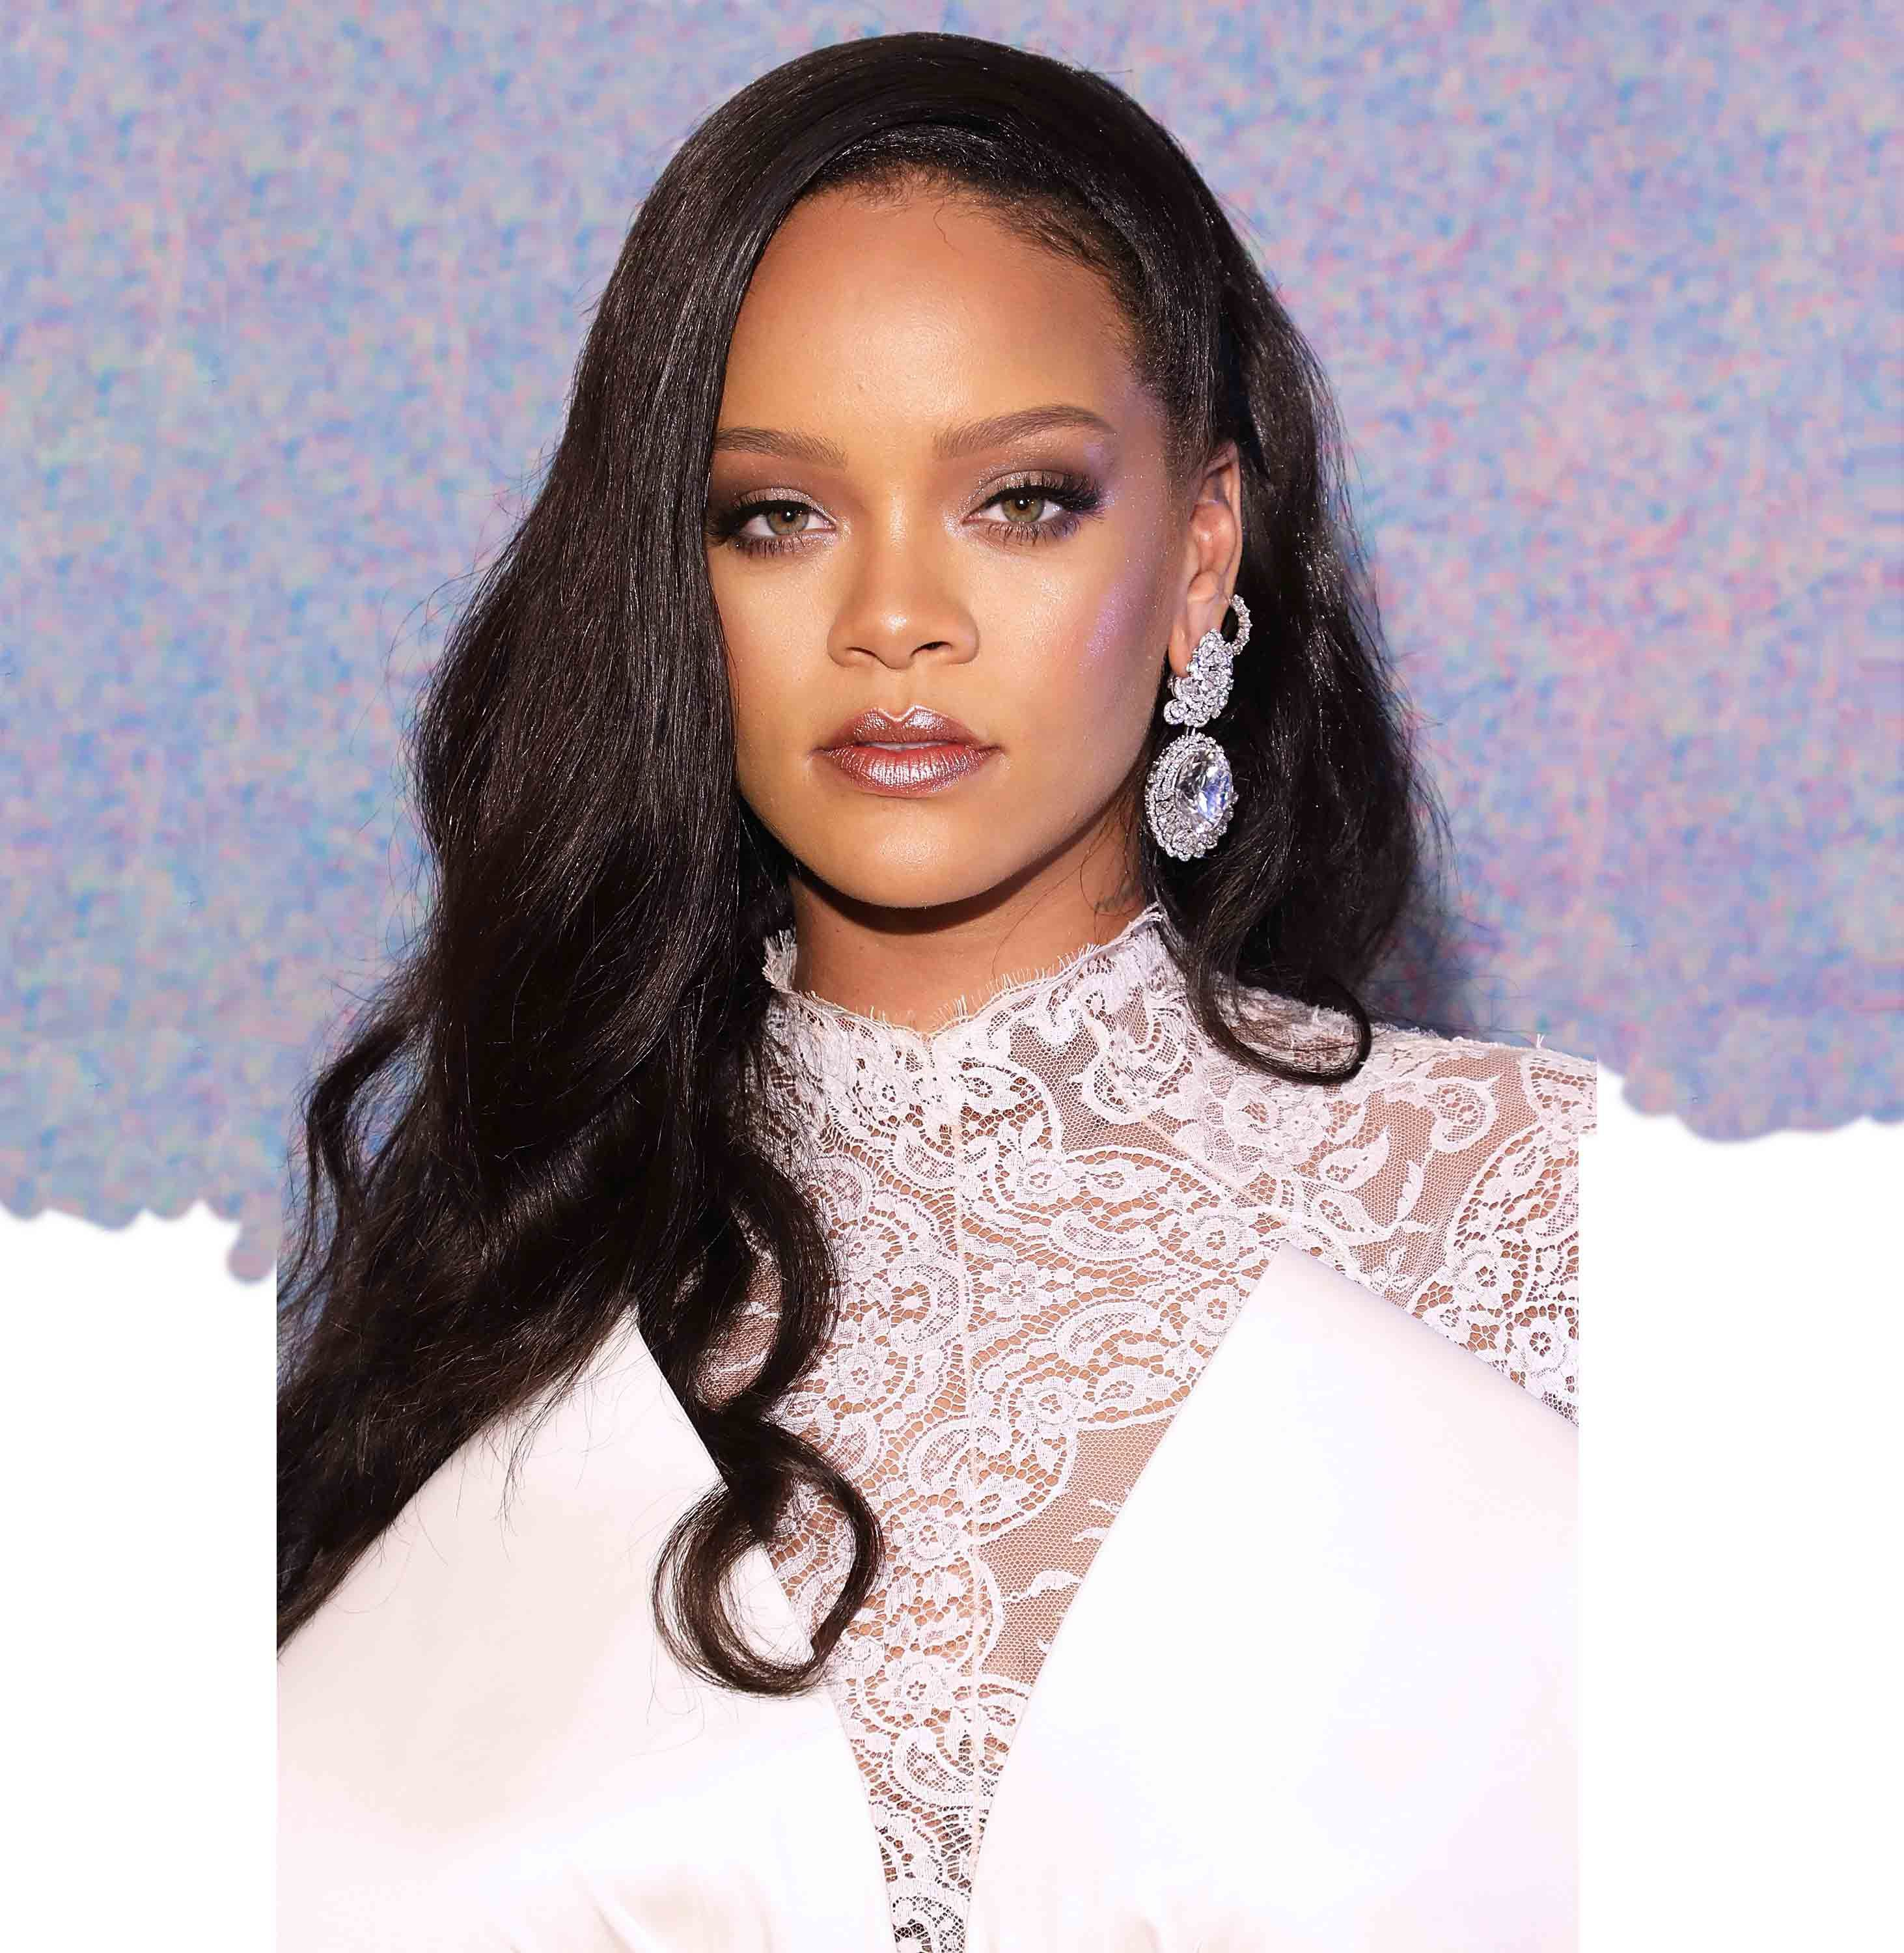 Fenty Beauty's Newest Product Is an Innovative Brow Pencil That Comes in 14 Shades